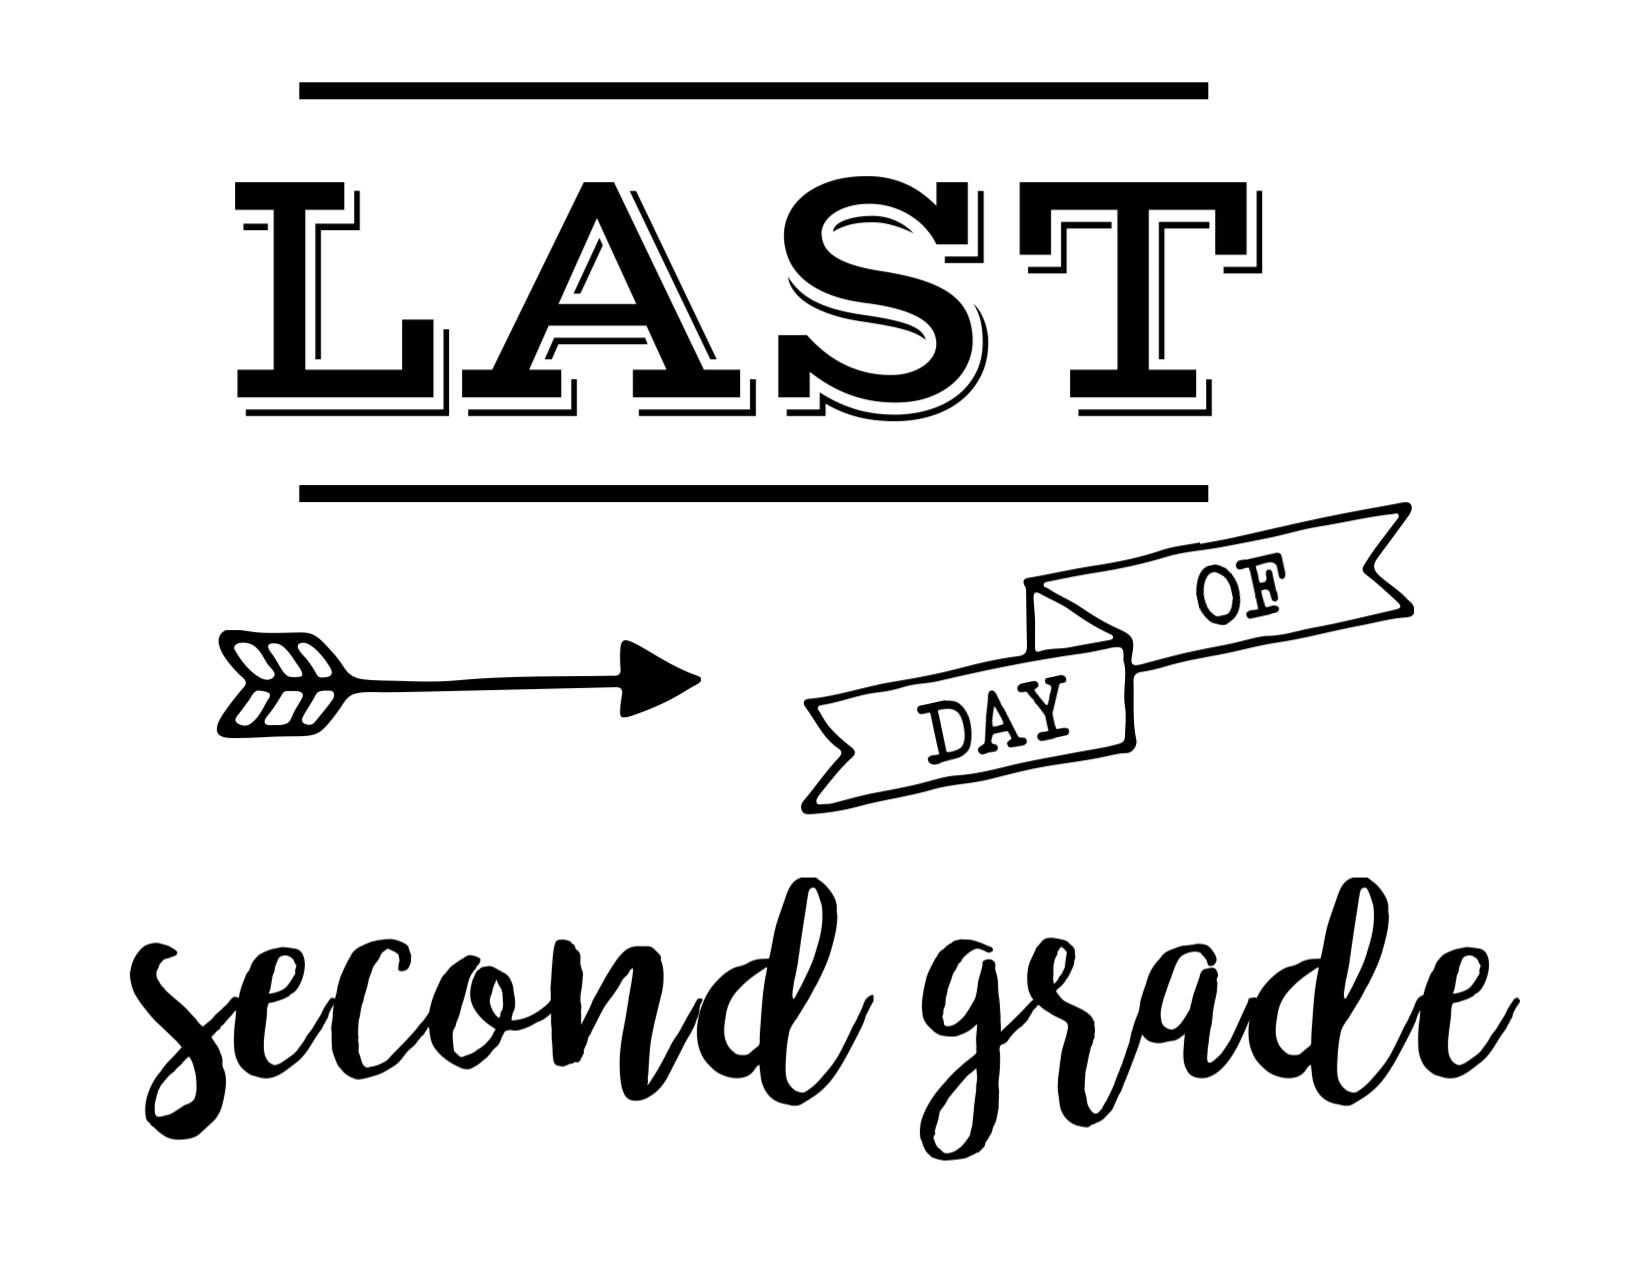 photograph regarding Last Day of 2nd Grade Printable called Very last Working day of College or university Indicator Cost-free Printable - Paper Path Structure